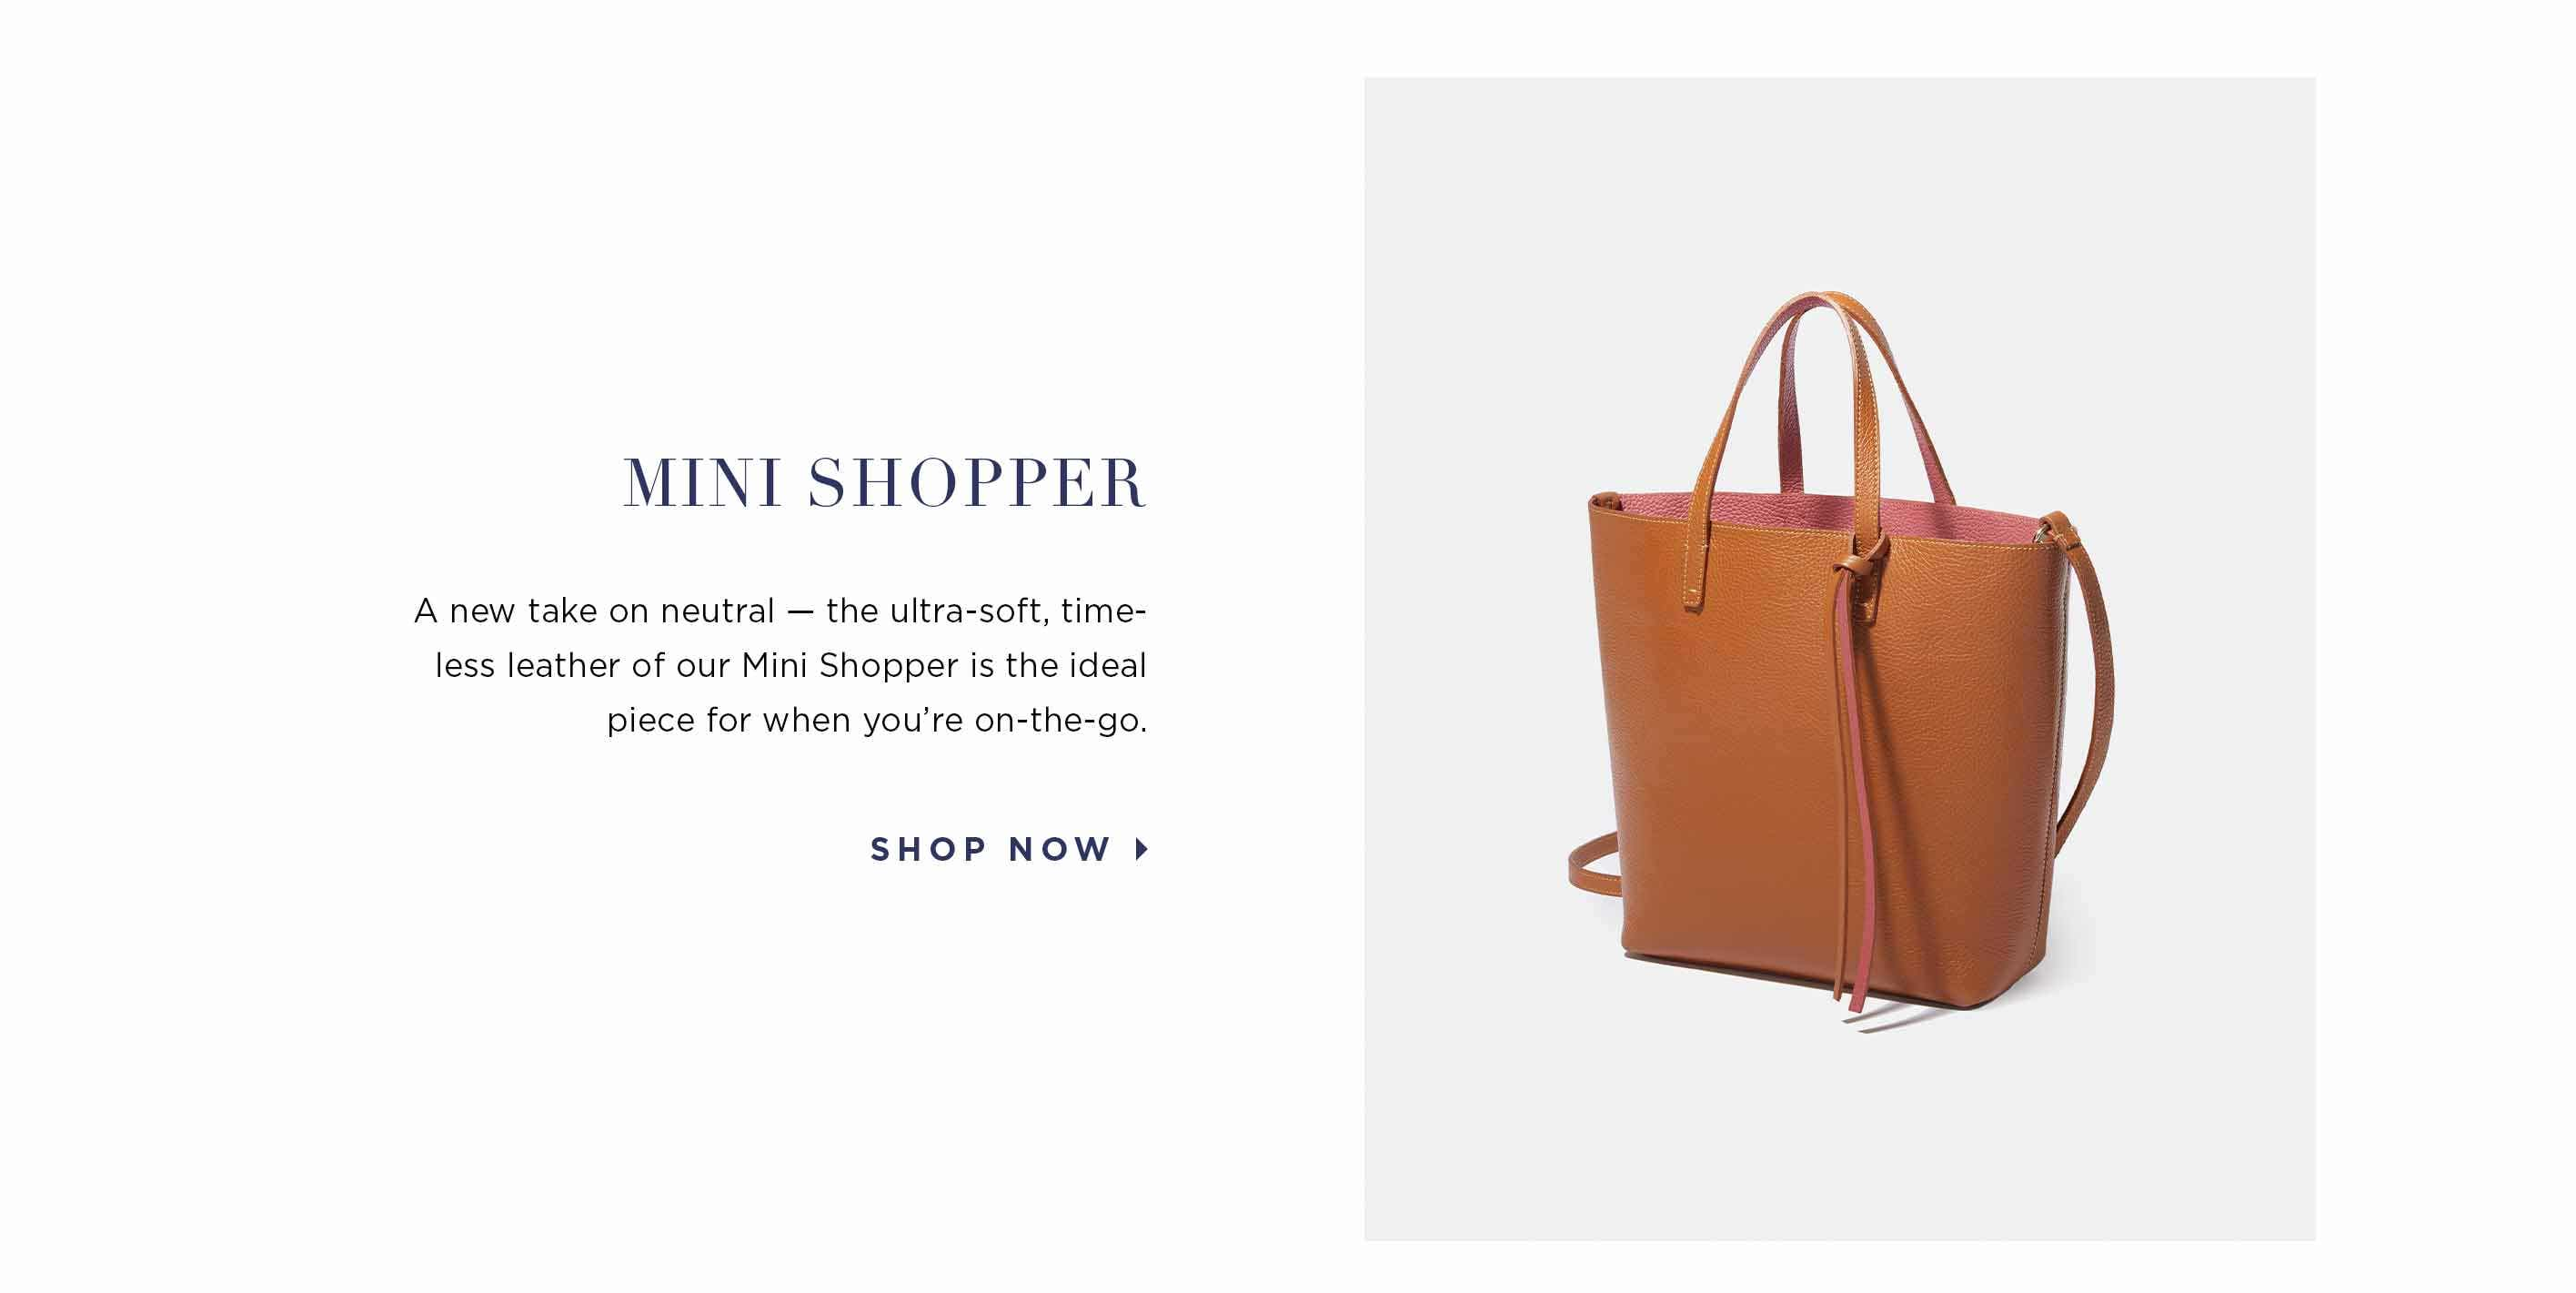 Mini Shopper - A new take on neutral — the ultra-soft, timeless leather of our Mini Shopper is the ideal piece for when you're on-the-go. Shop now.